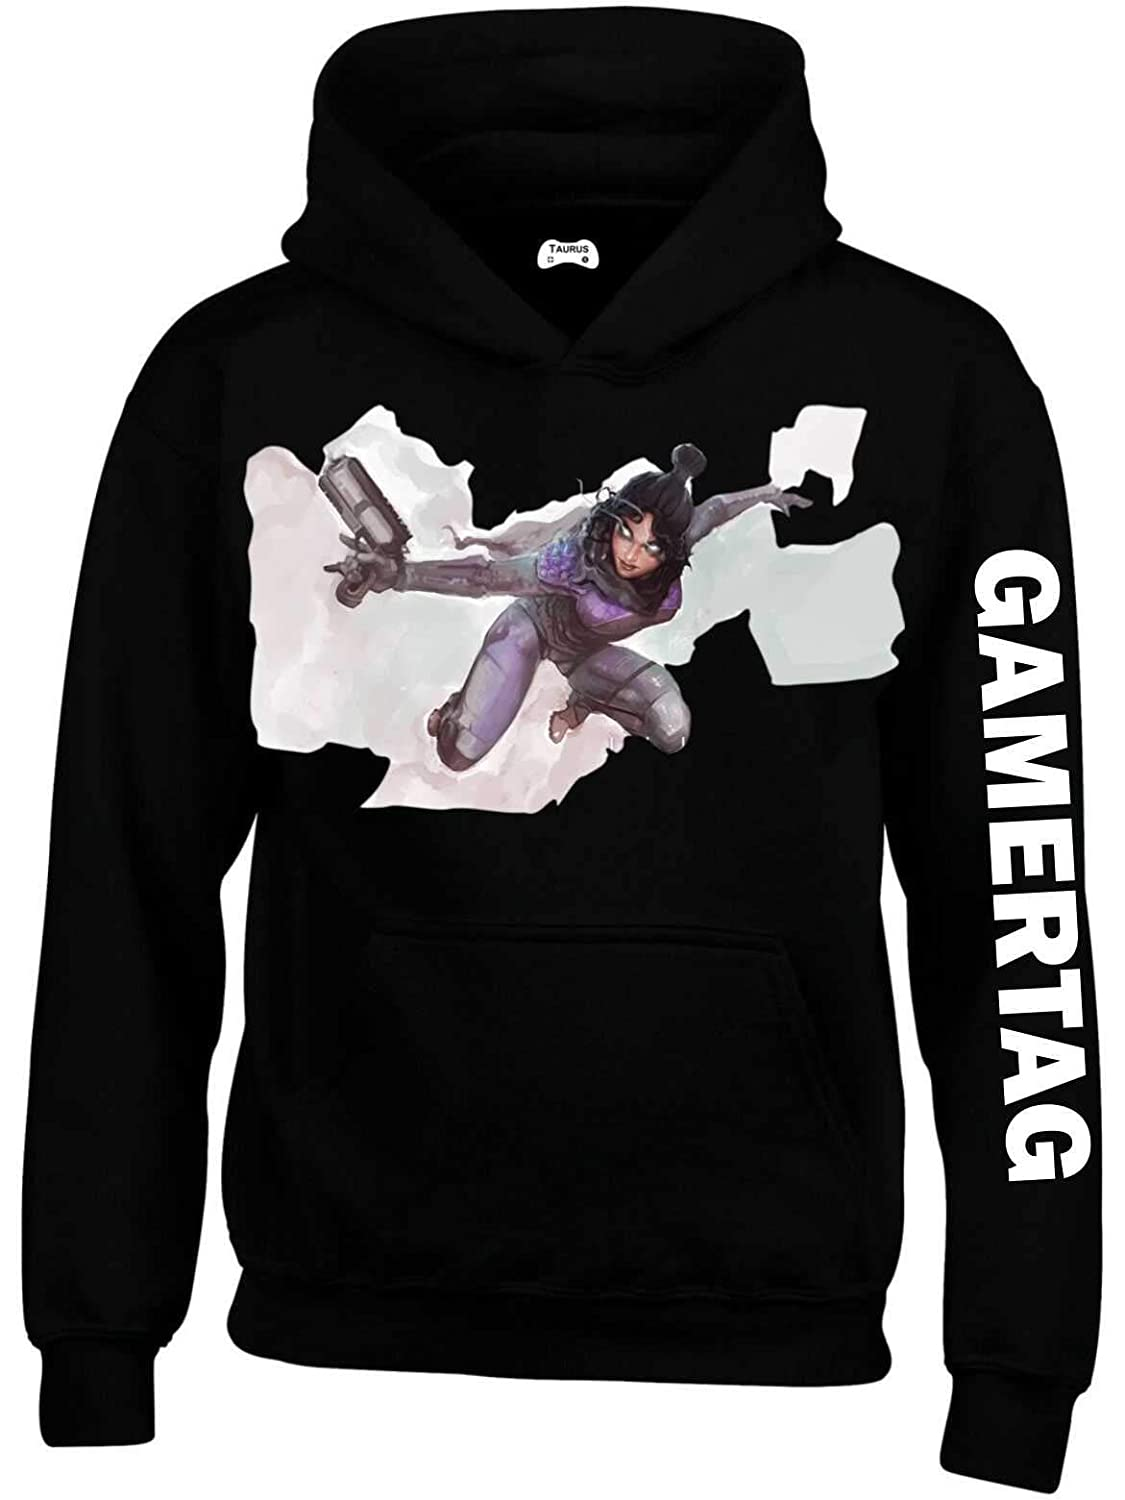 APEX LEGENDS HOODIE PERSONALISED WITH GAMER TAG 50385